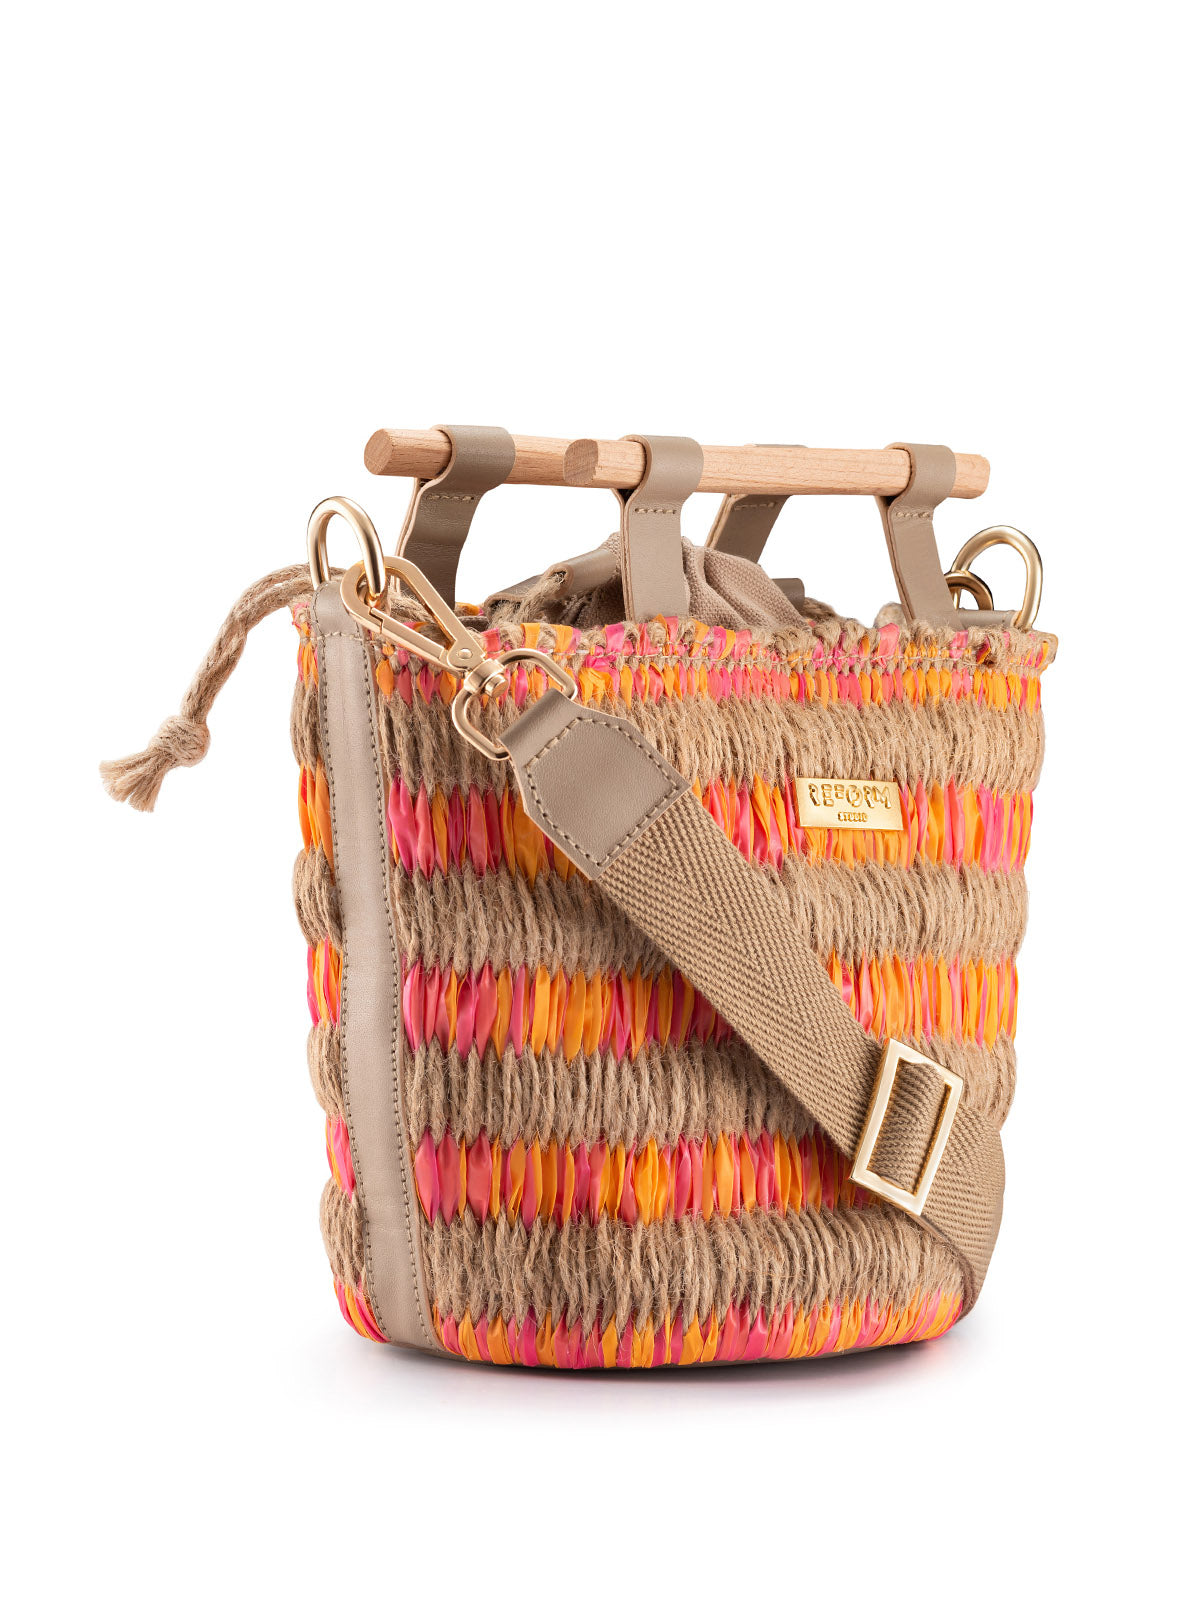 Mini Afro Basket in Pink and Orange